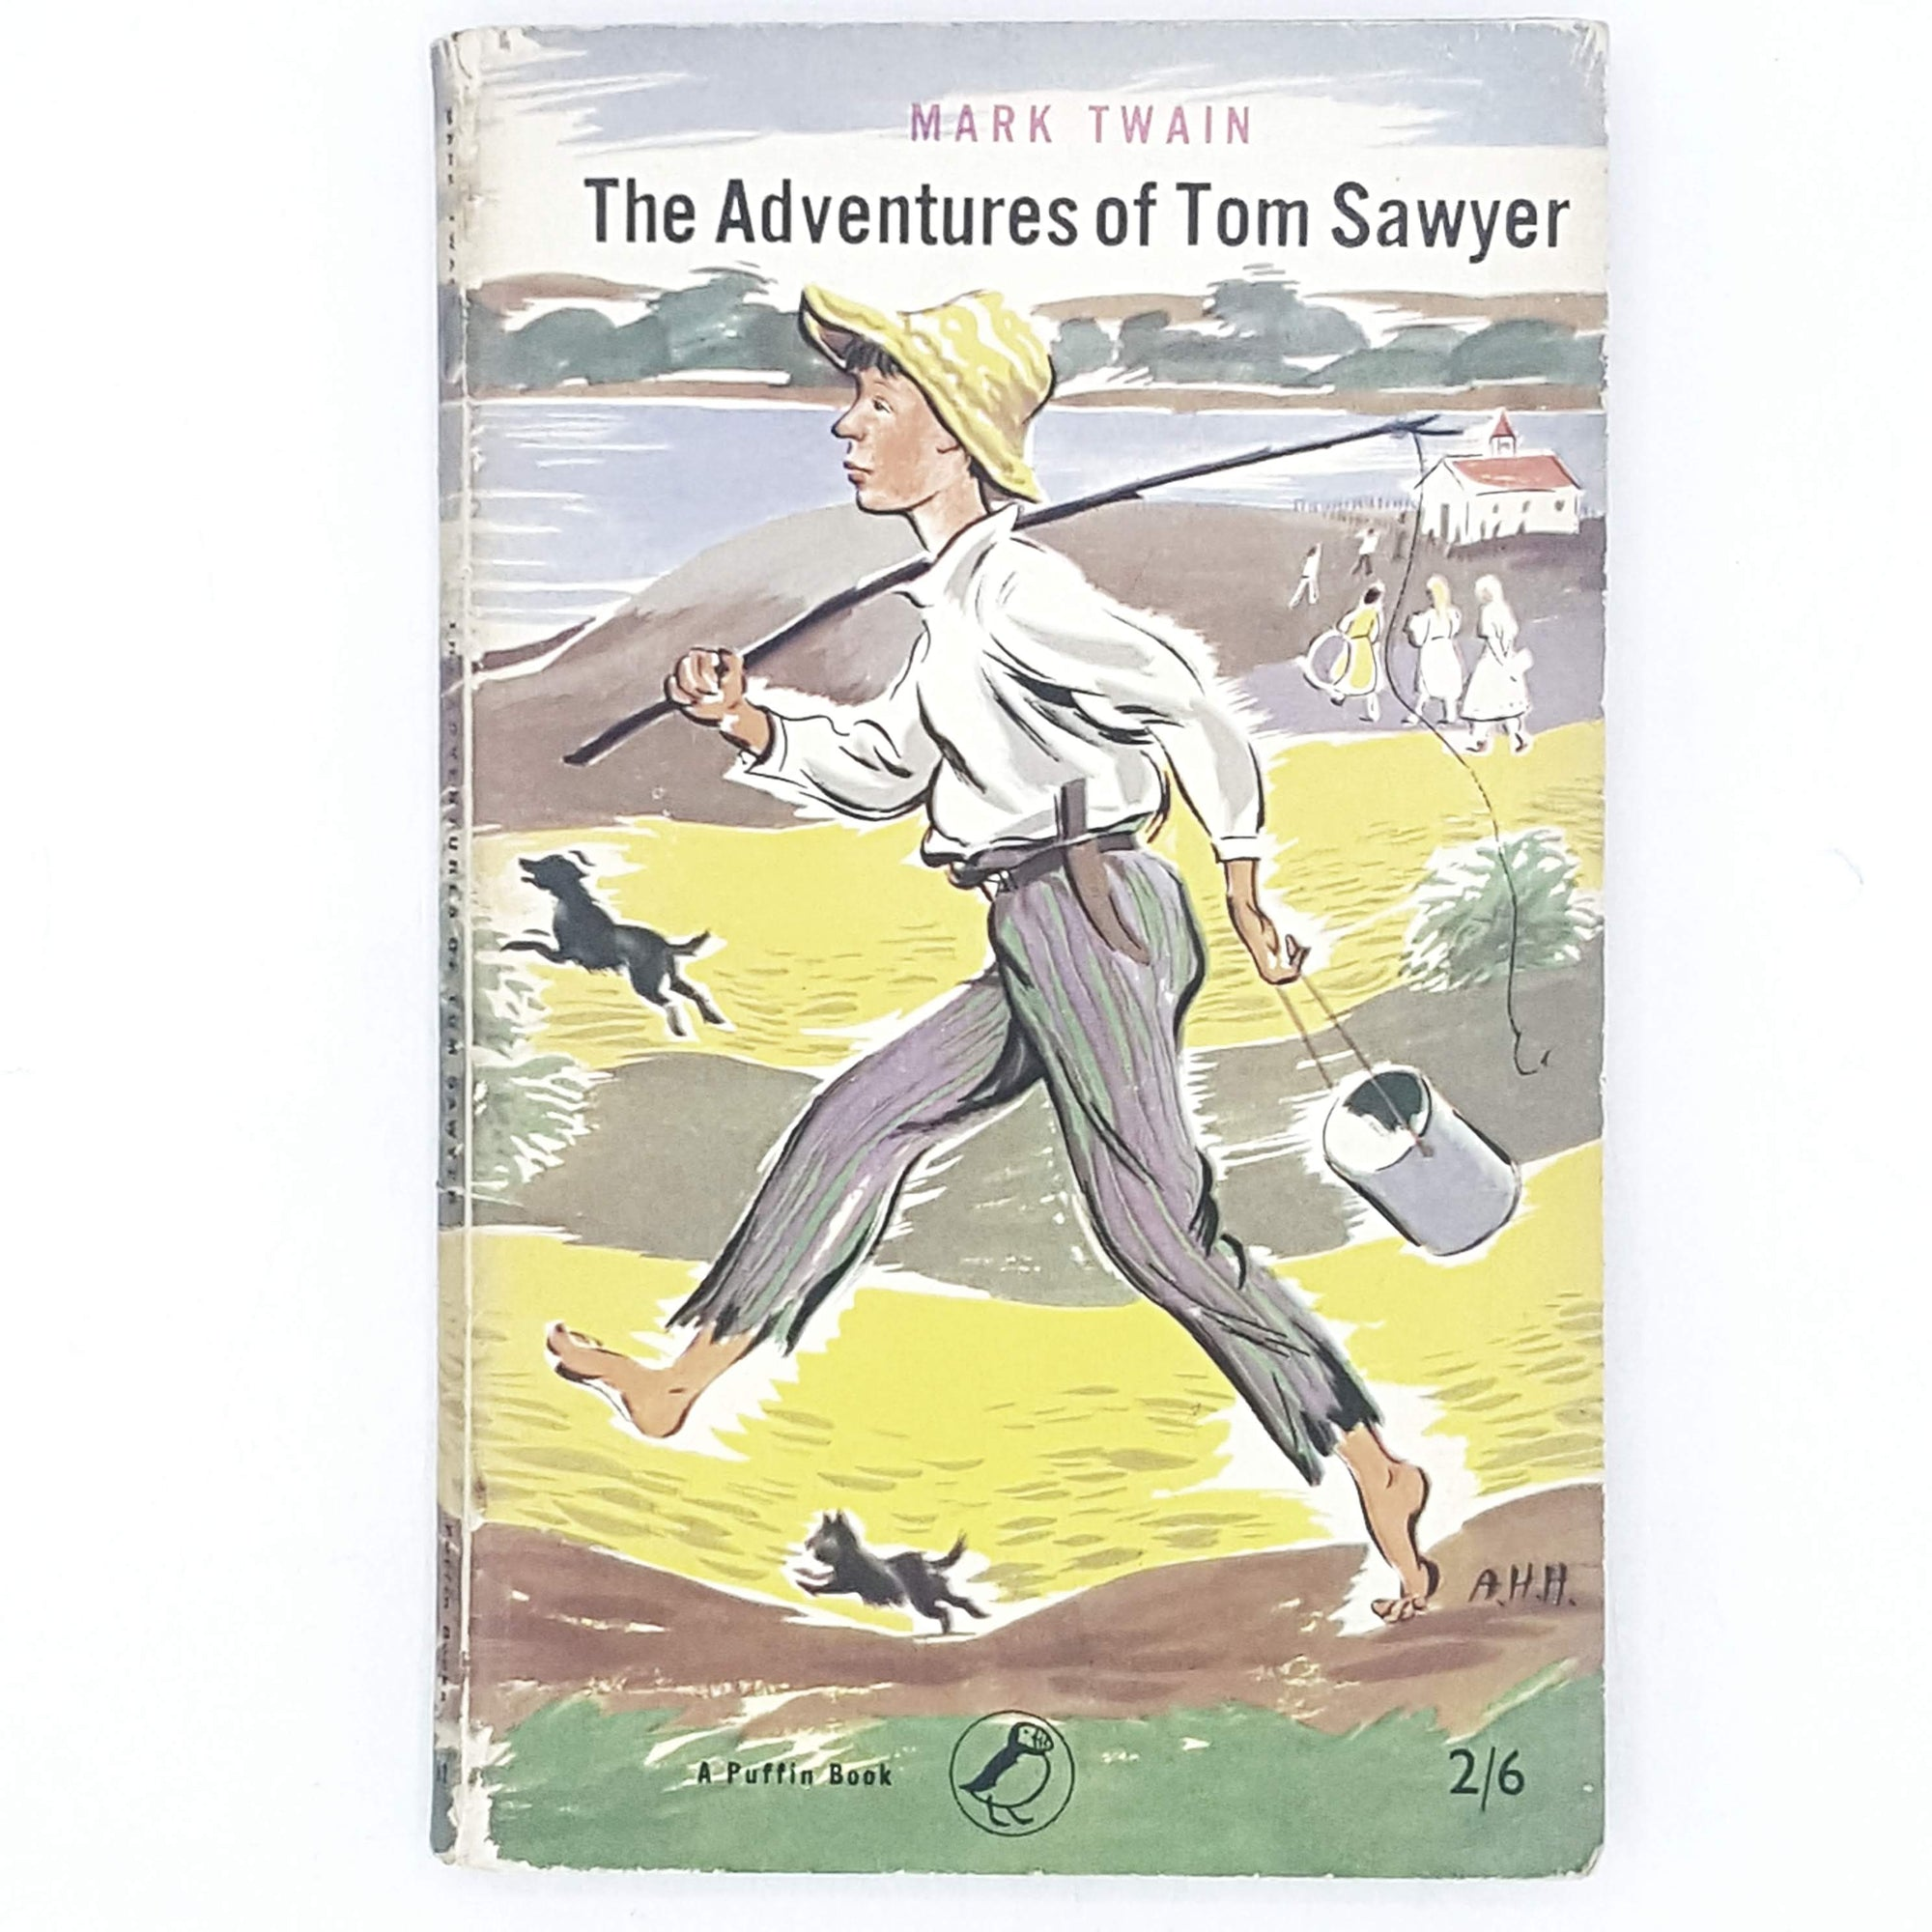 Mark Twain's The Adventures of Tom Sawyer 1958